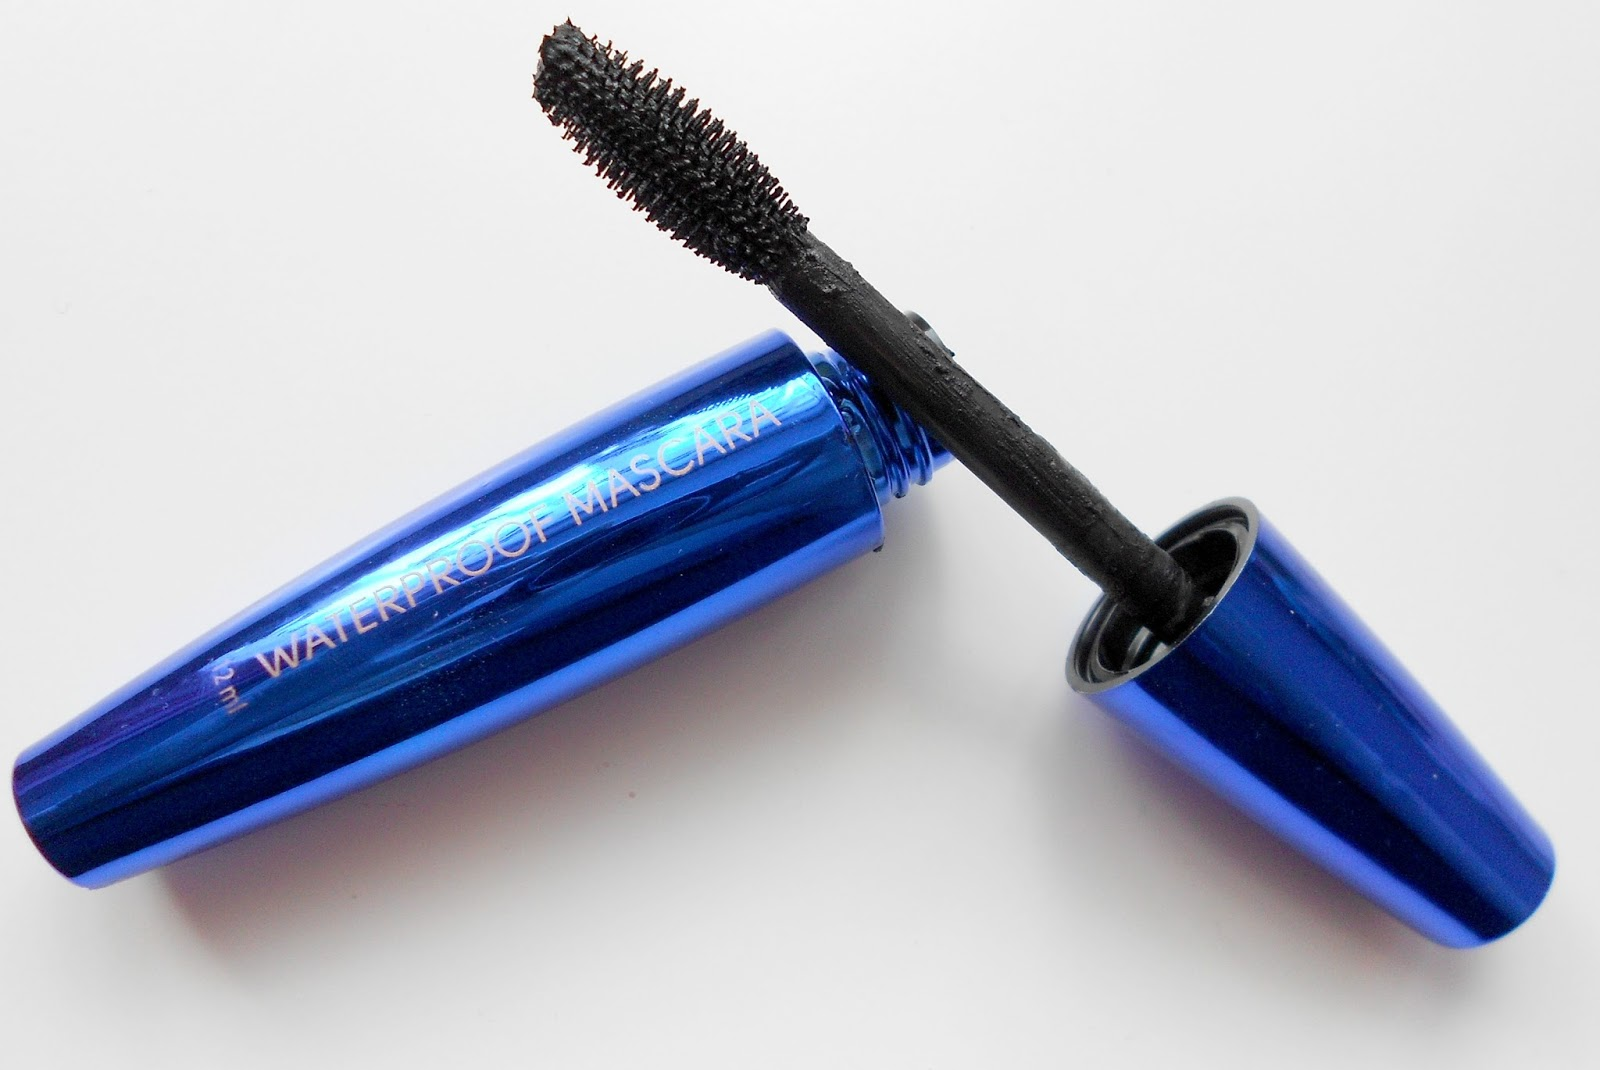 primark waterproof mascara review